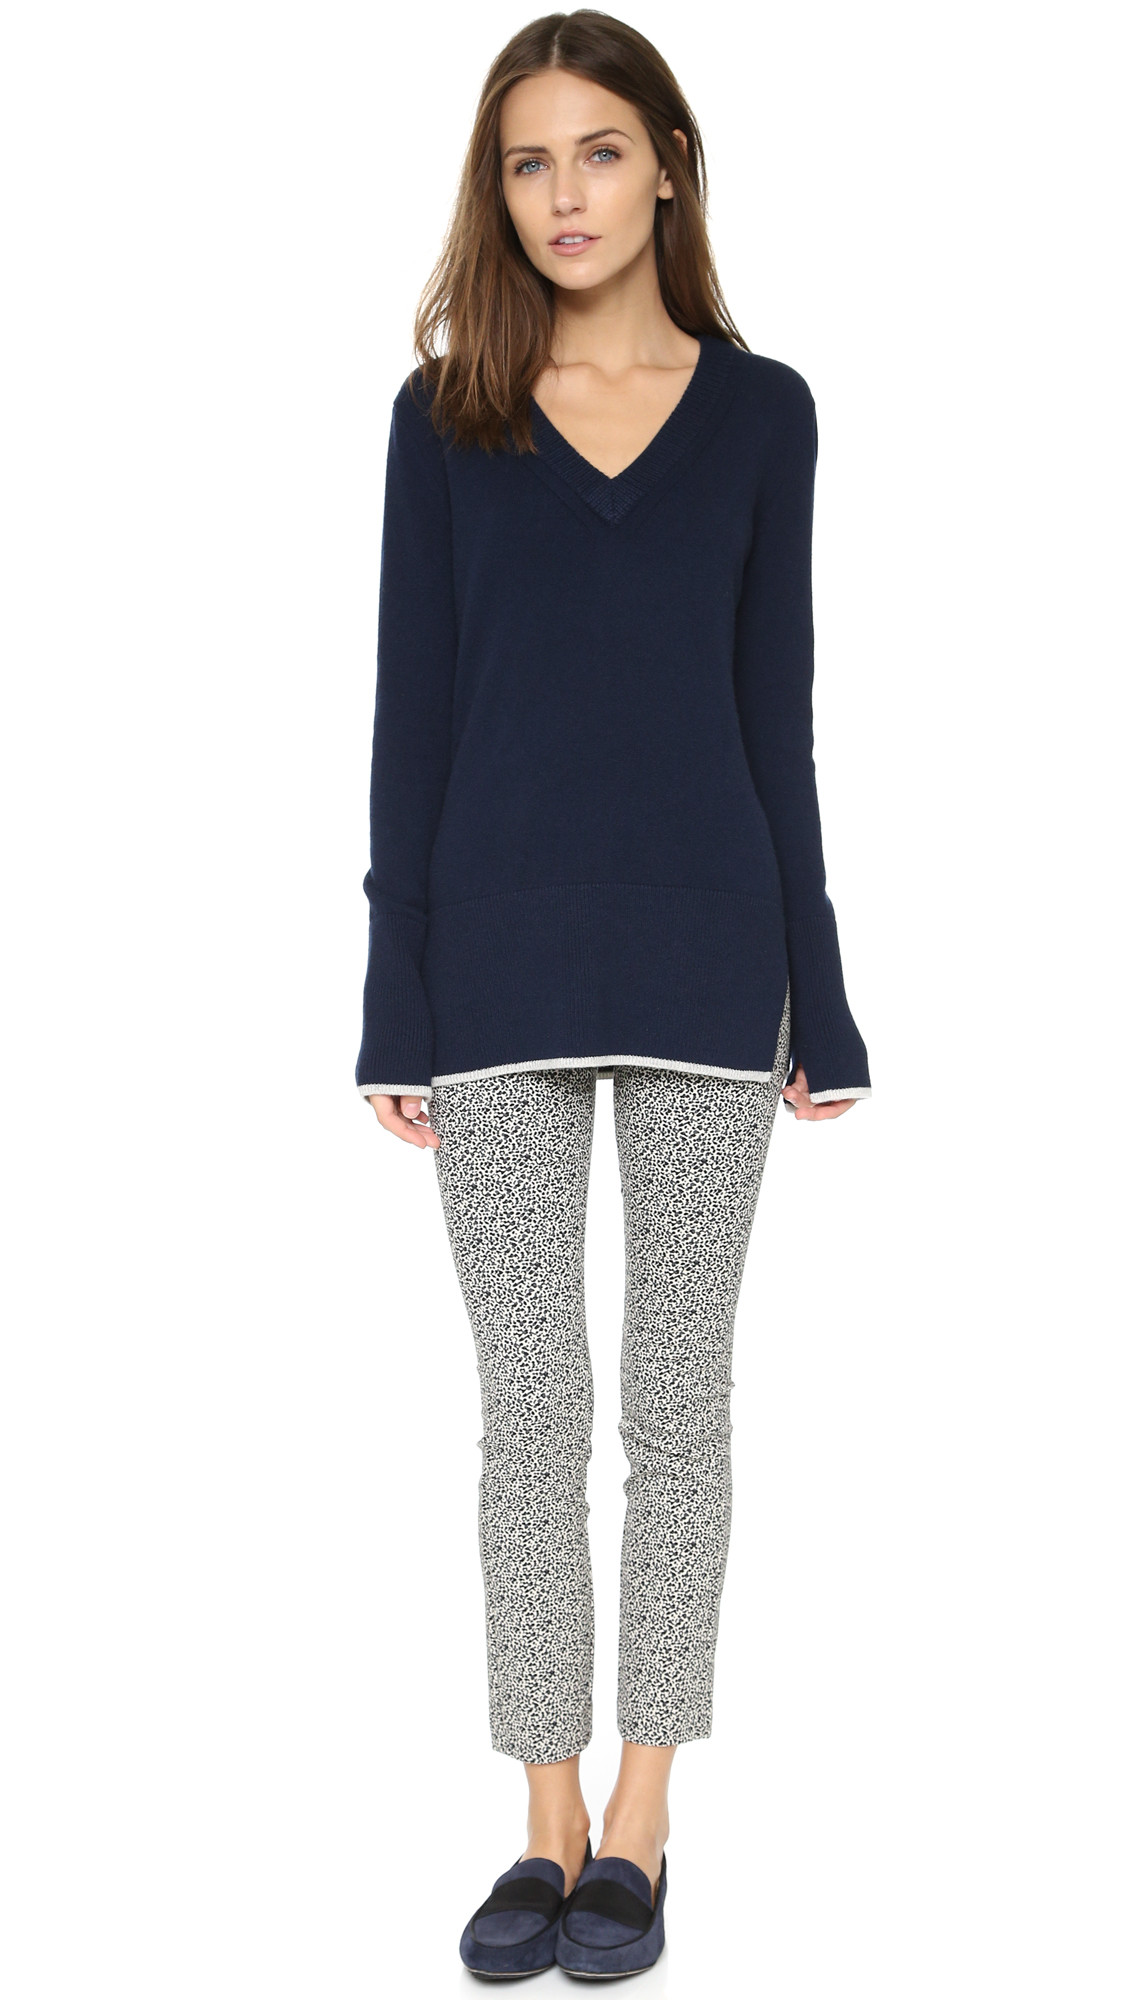 Rag & bone Flavia Cashmere V Neck Sweater in Blue | Lyst